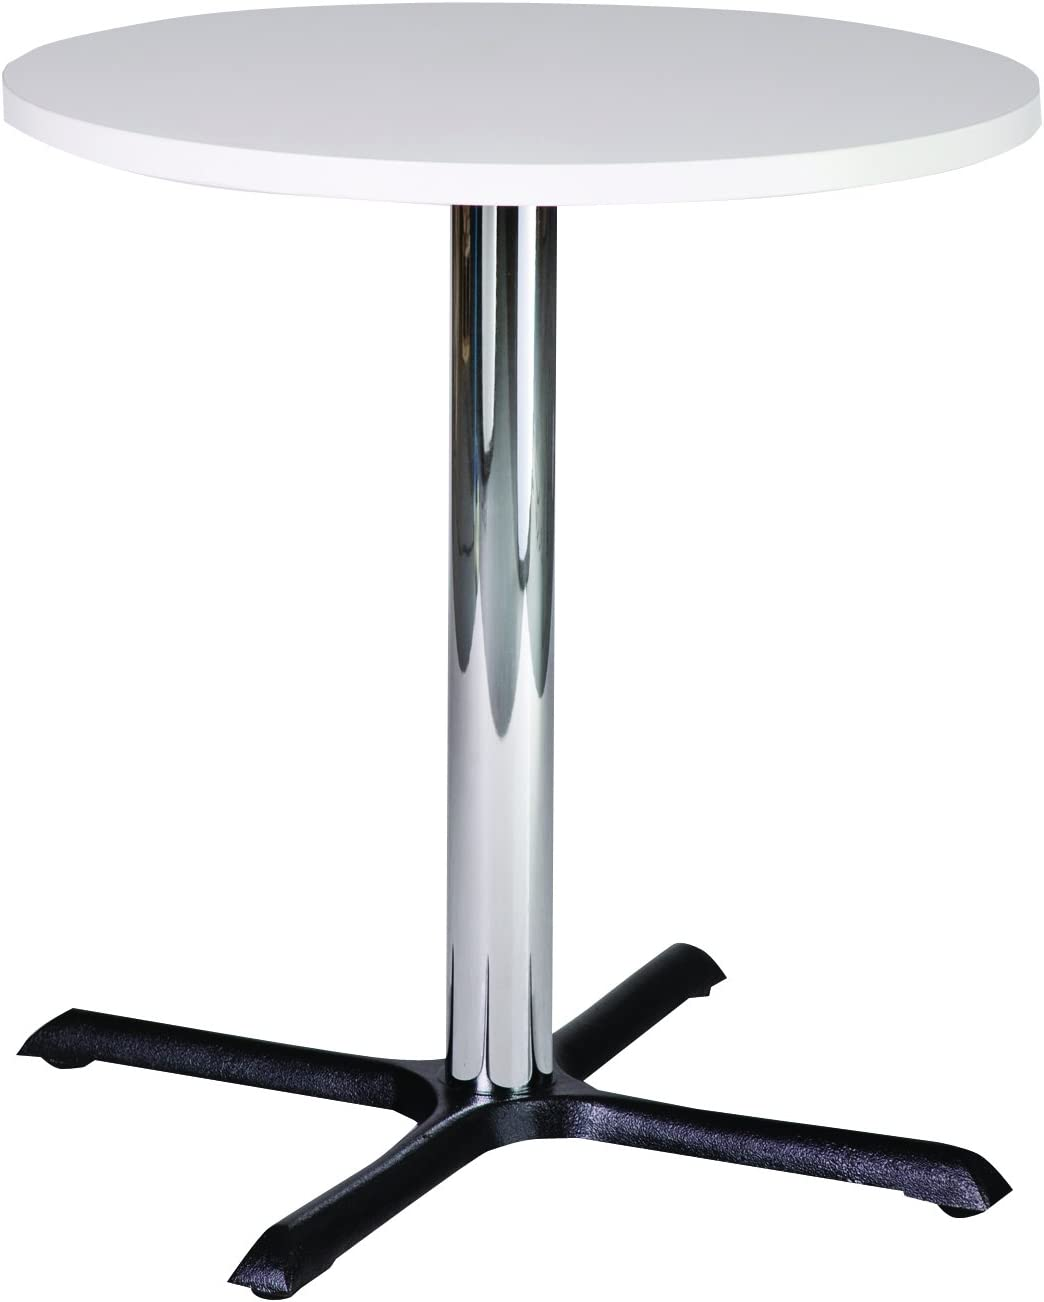 Small Solid Melamine White Circular Tables on Central Chrome Column